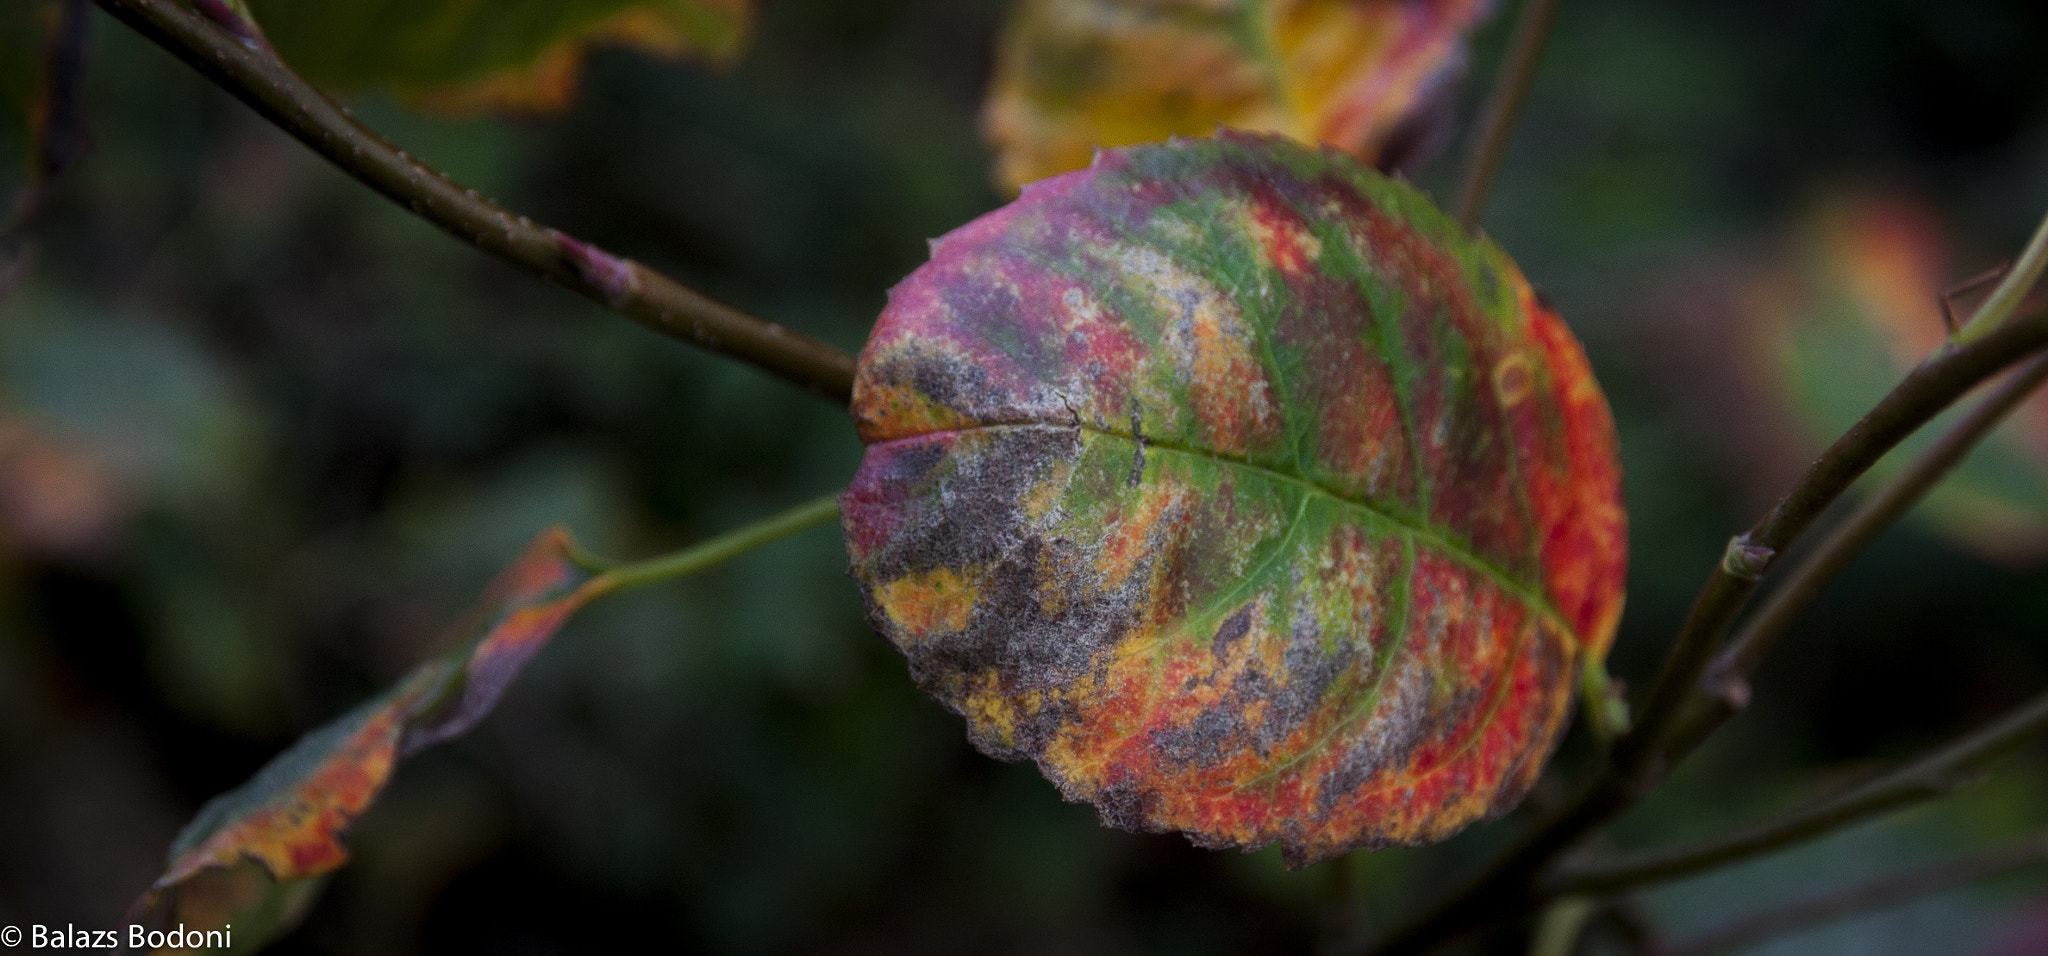 Photograph Autumn color leaf by Balazs Bodoni on 500px